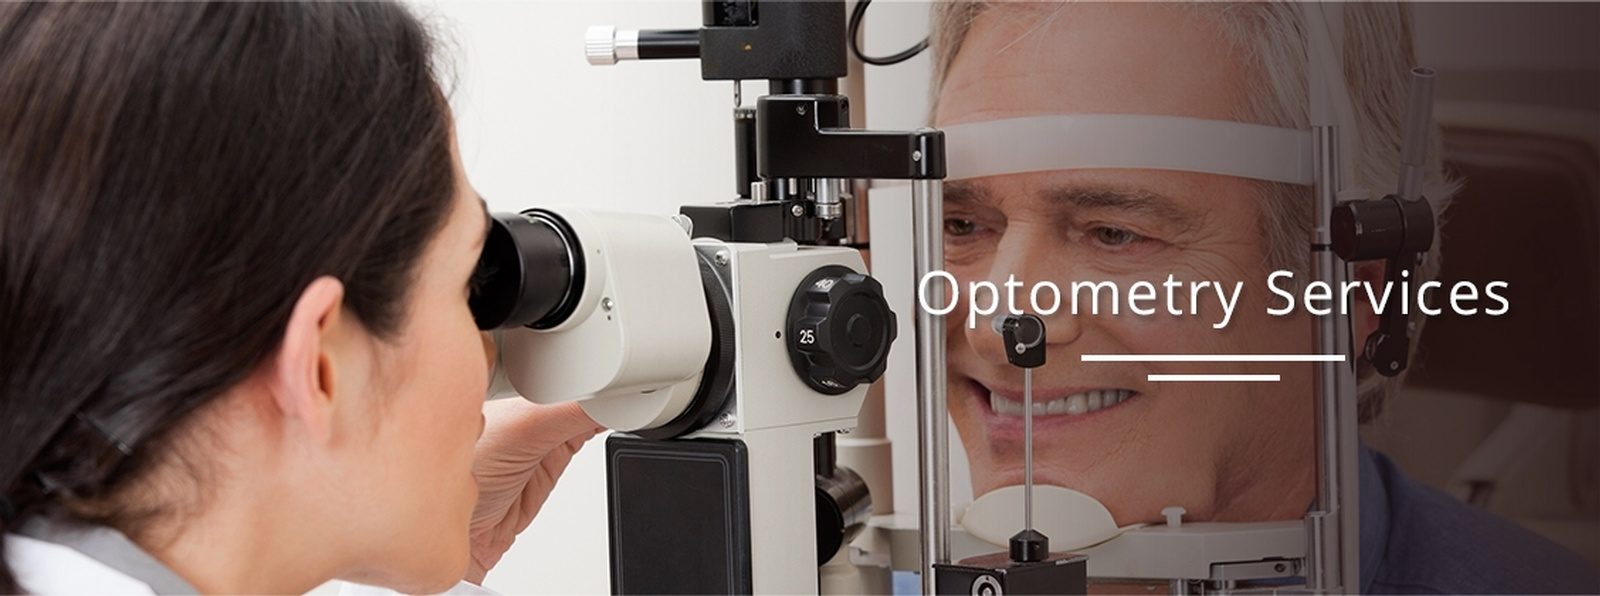 Mississauga optometric clinic